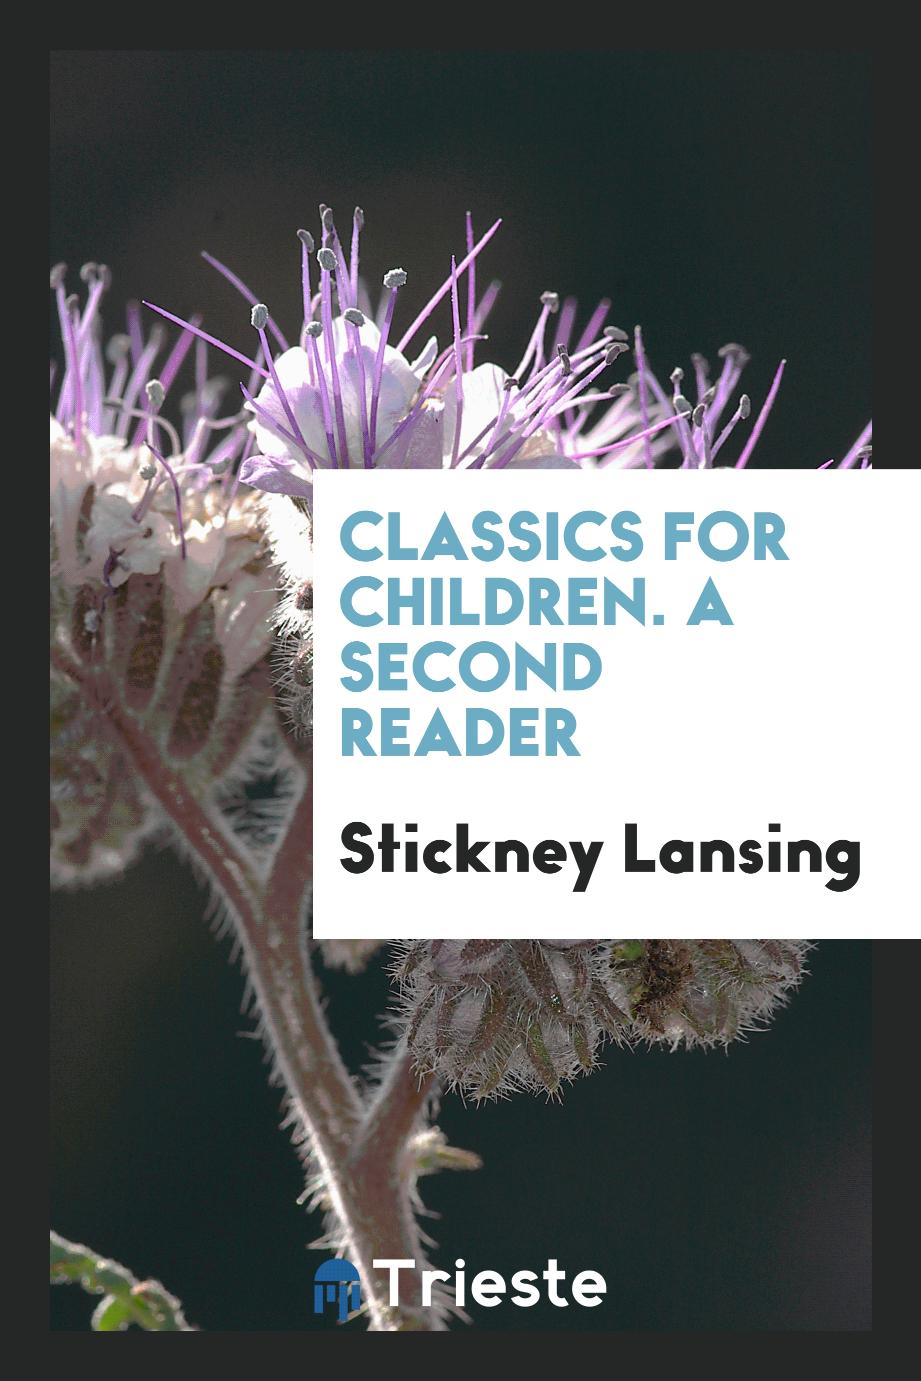 Stickney Lansing - Classics for Children. A Second Reader